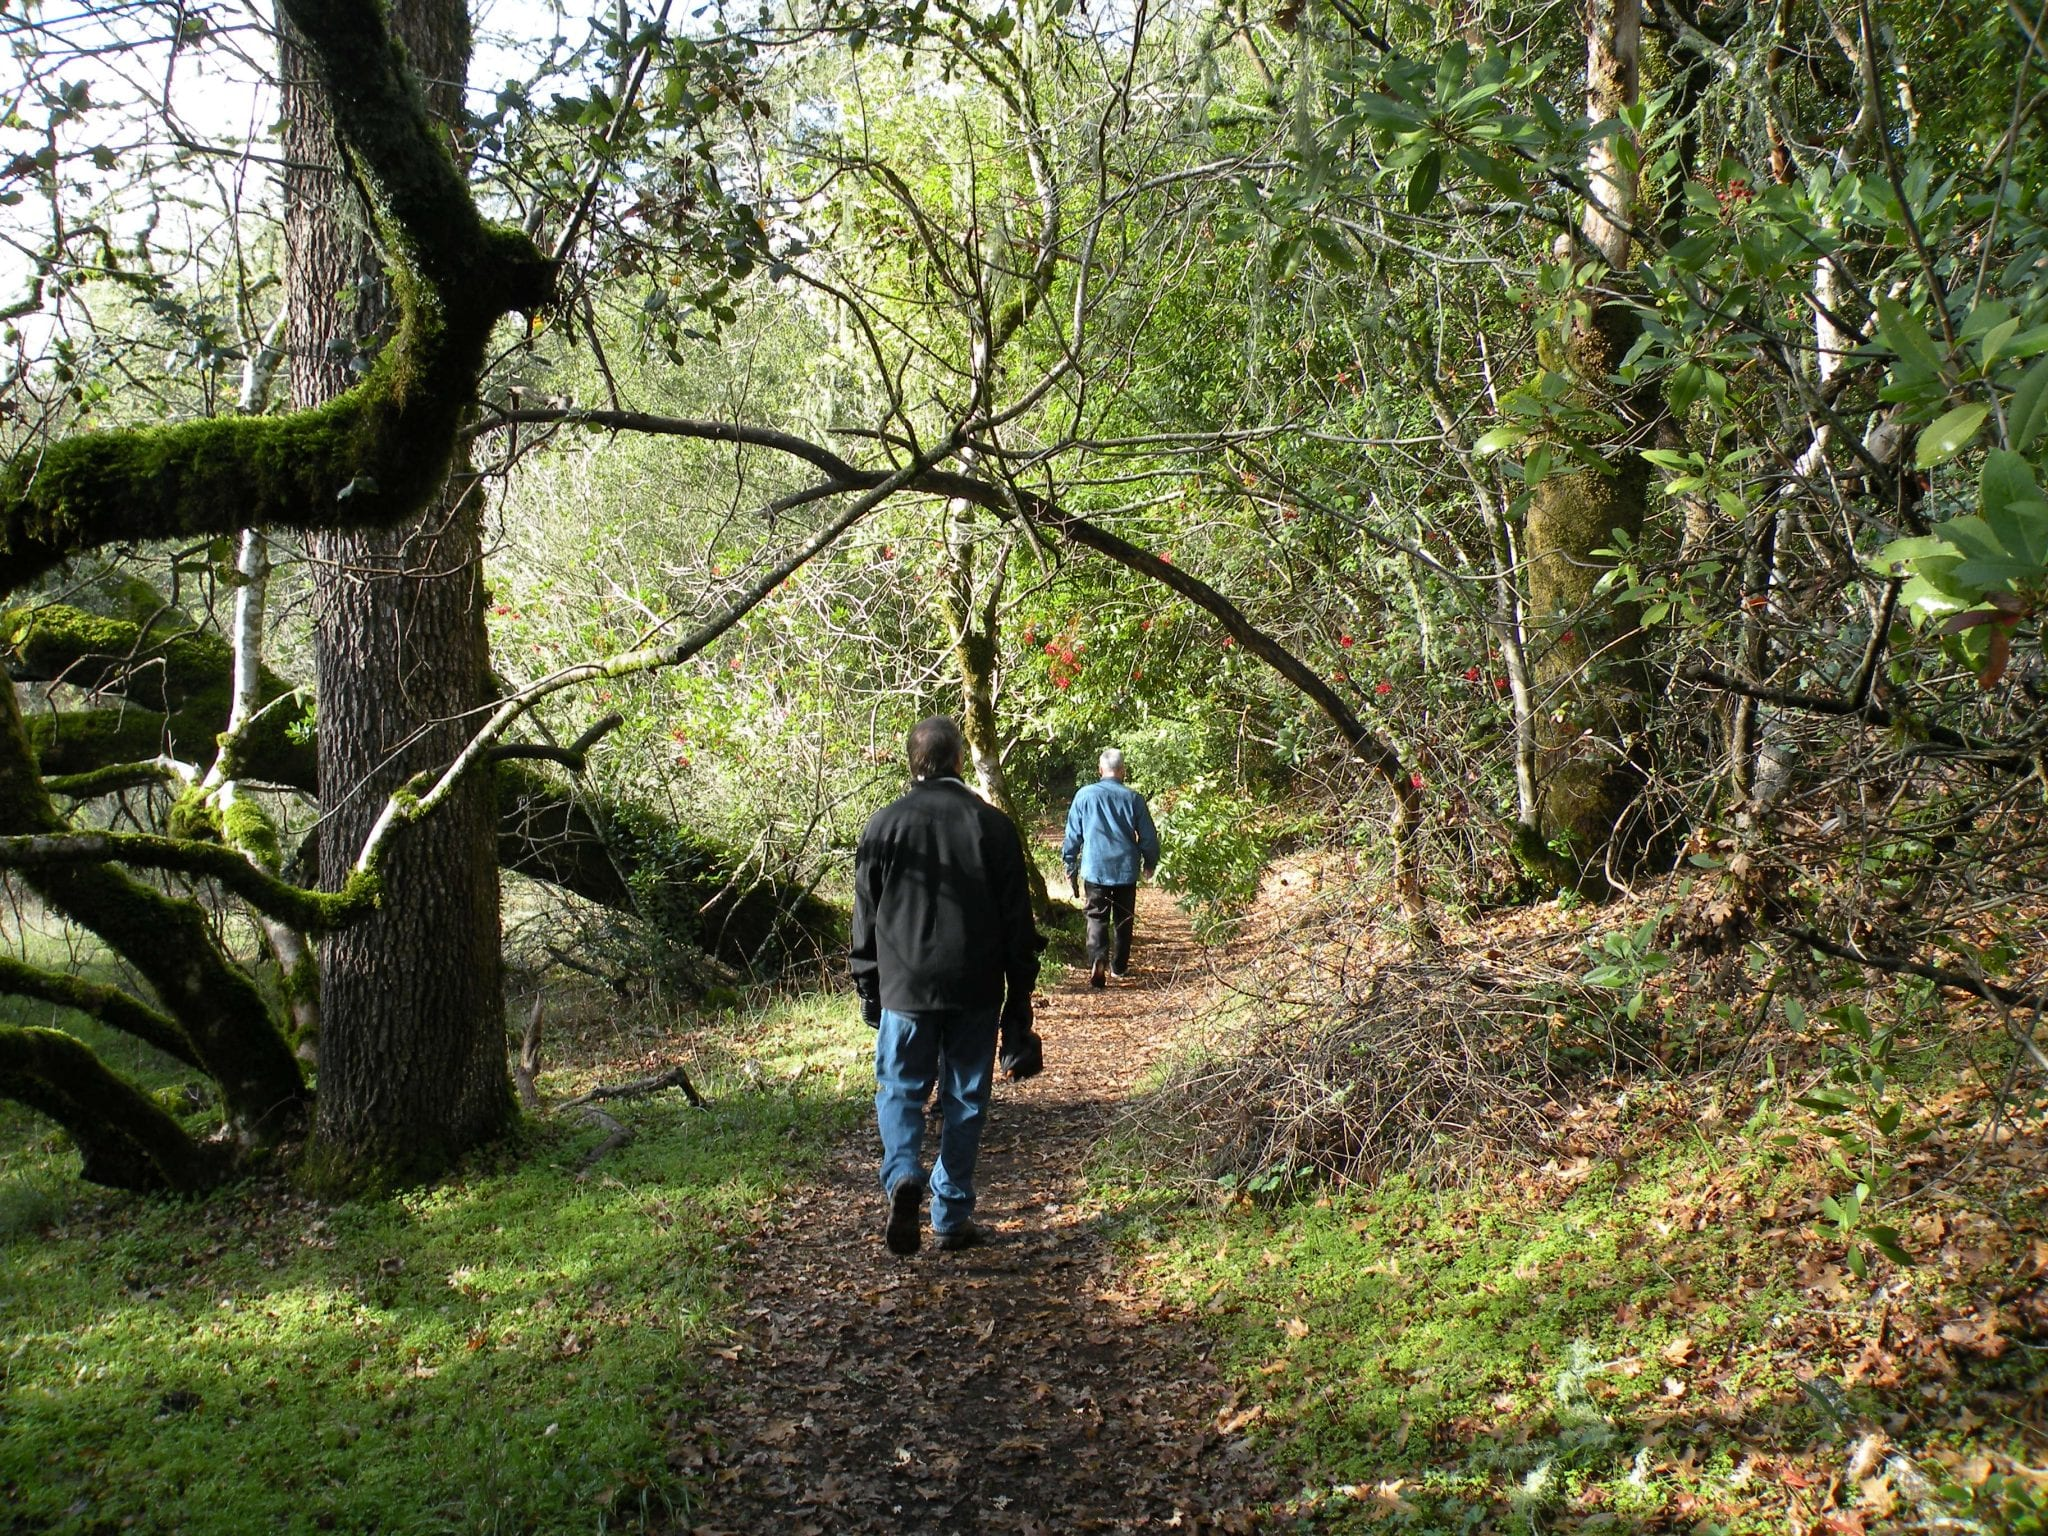 Hikers on trail at JLH